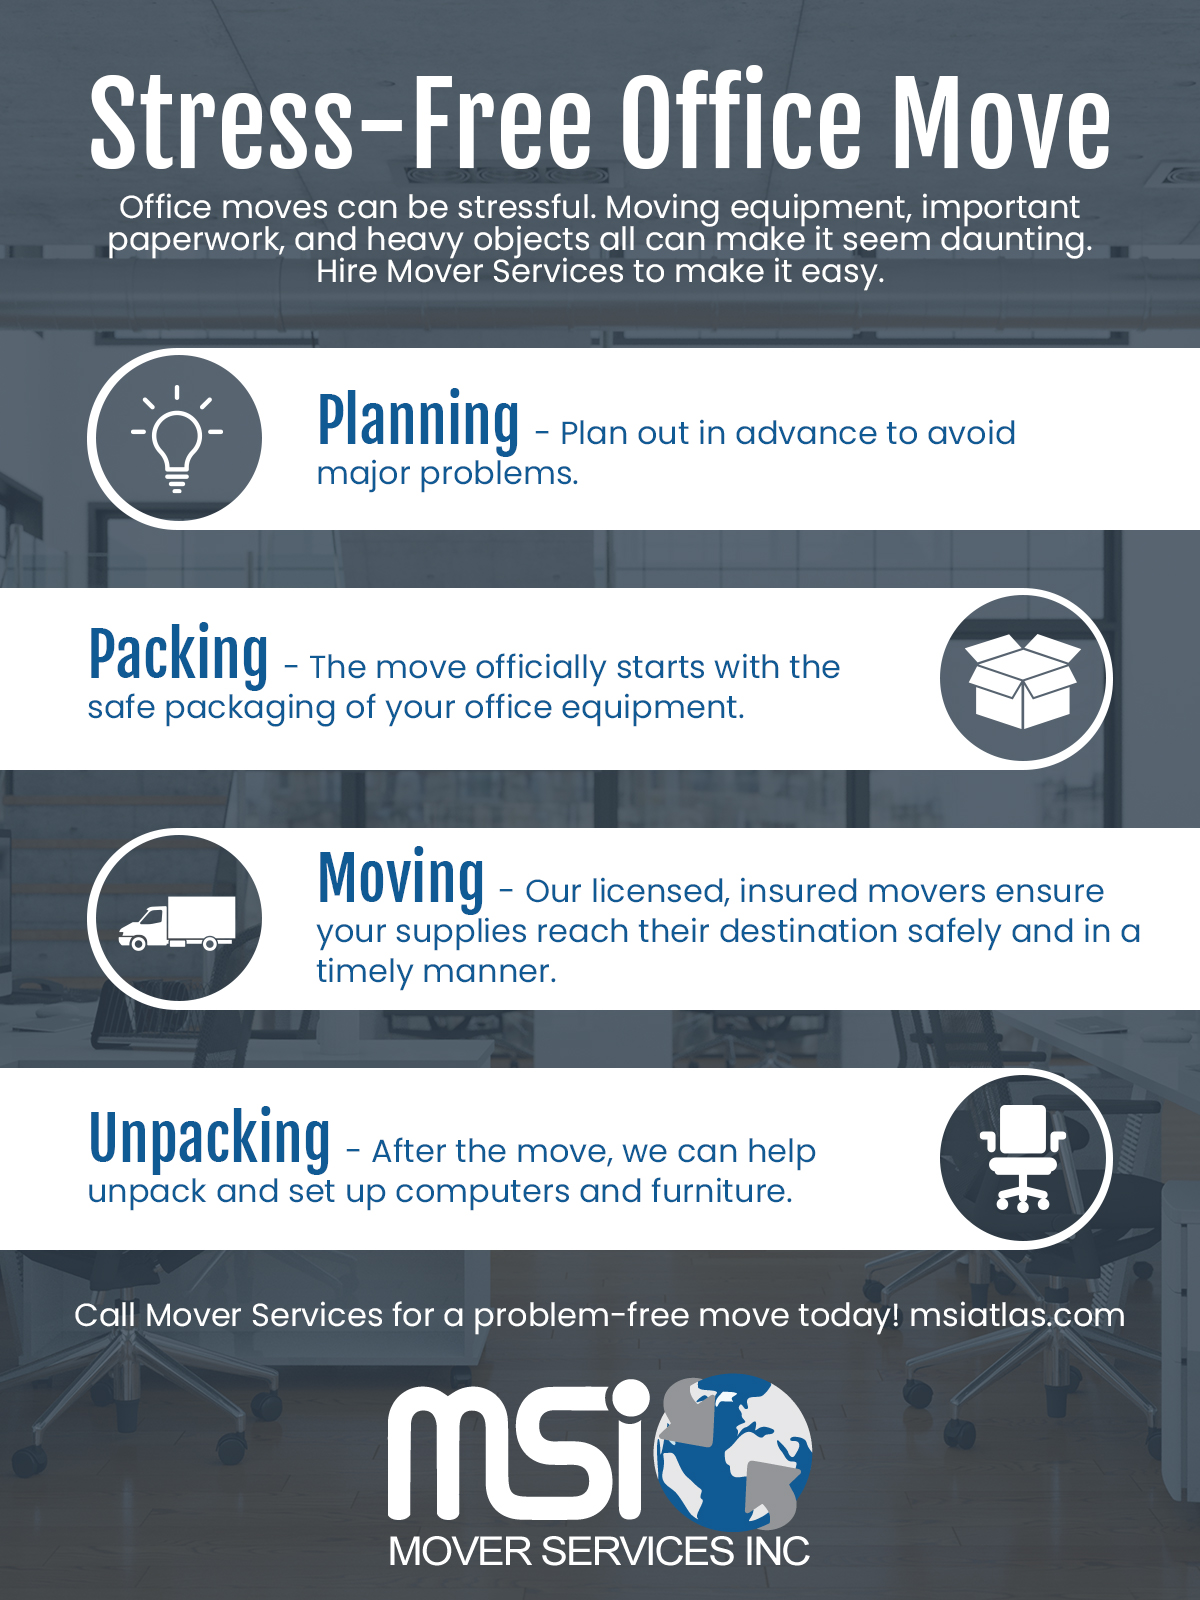 Stress-Free Office Move Infographic